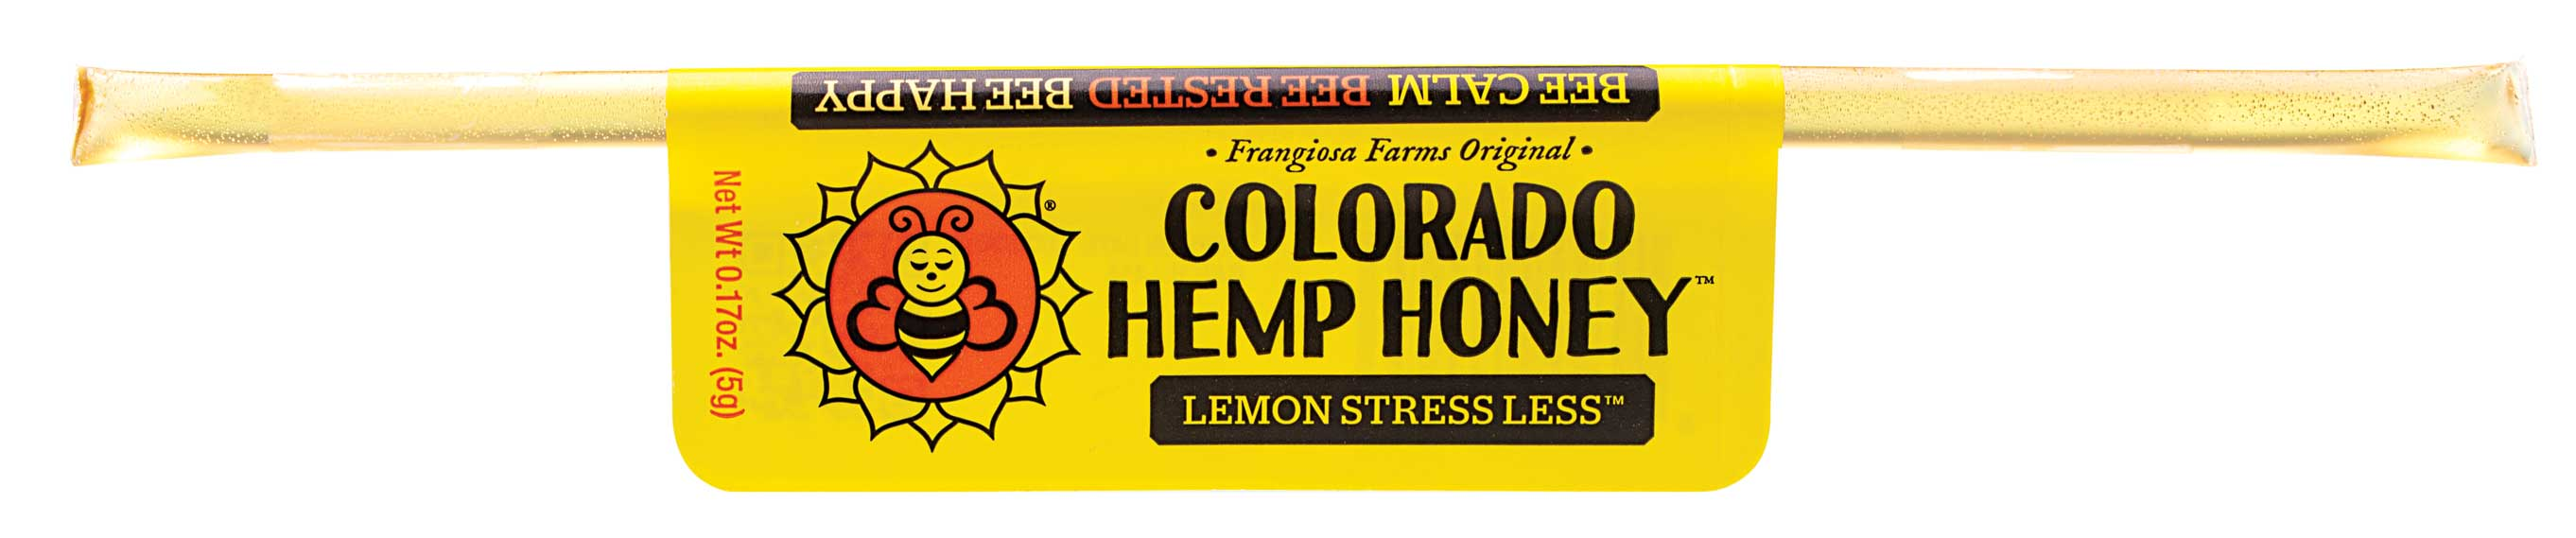 Colorado Honey Lemon Stress Less Full Spectrum Extract Sticks, 1-count (15-mg)